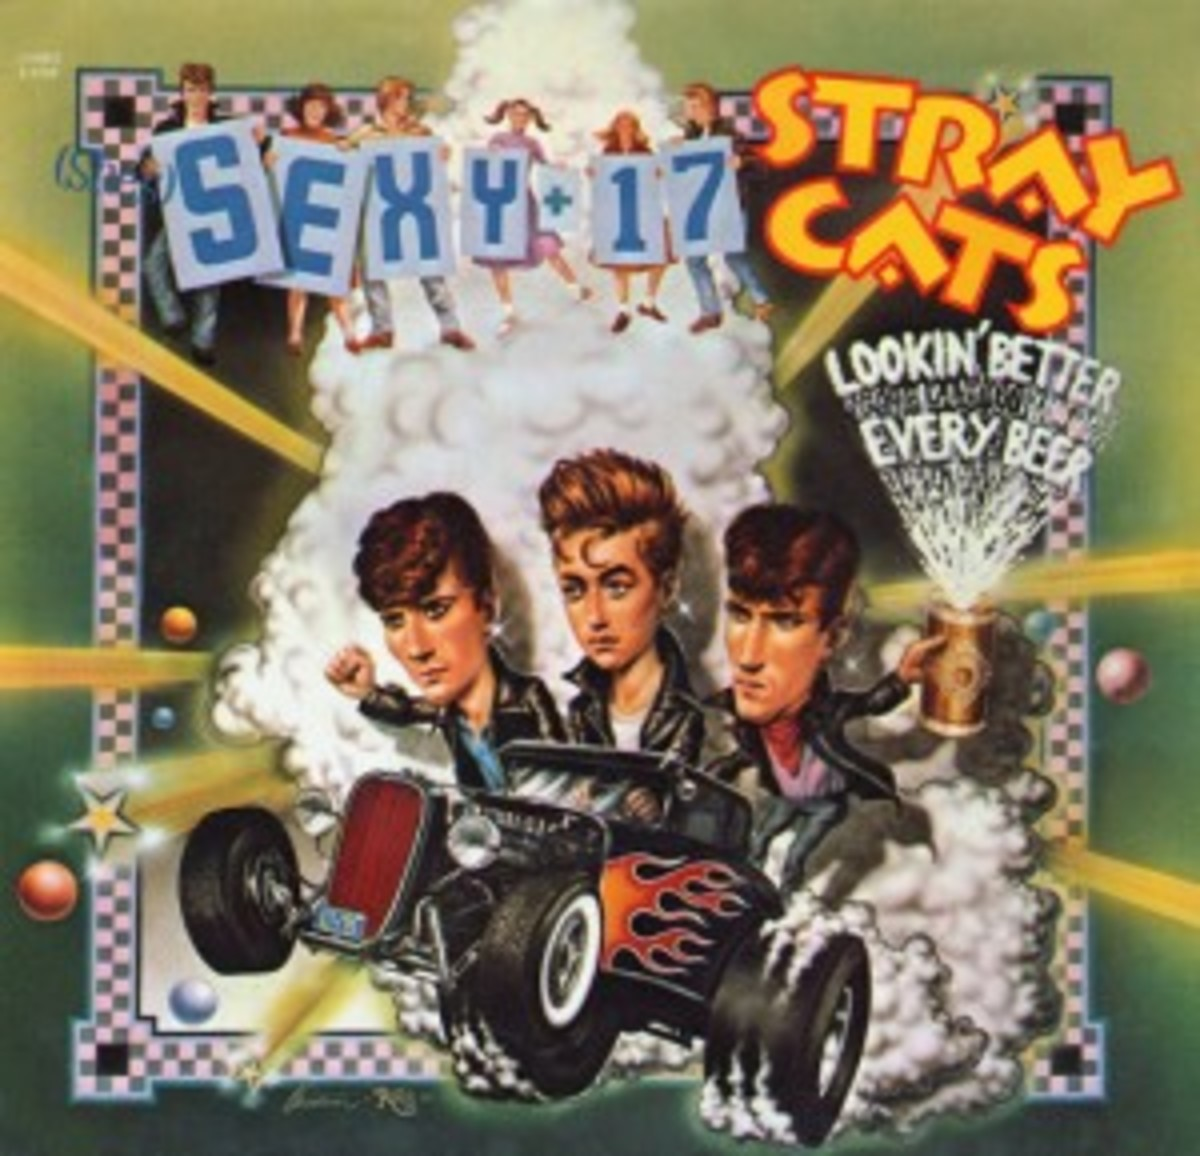 Stray Cats Sexy And 17 picture sleeve